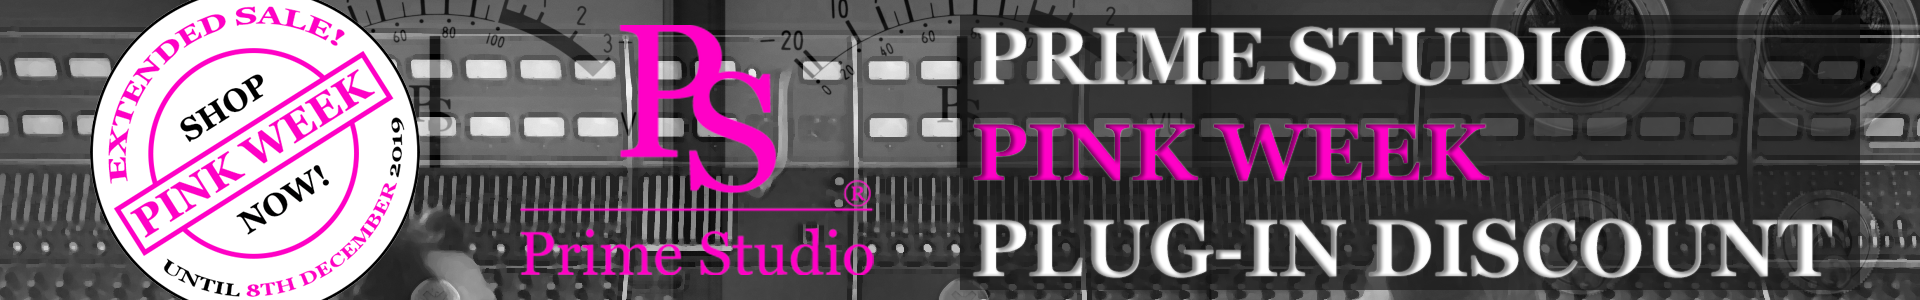 <div><strong>PINK WEEK SALE</strong><br /><h2>SAVE UP TO 50% ON SELECTED PLUG-INS!</h2>   Get up to 50% OFF selected plug-ins in our online shop from 29th of November until 8th of December 2019. Just enter our ONLINE SHOP NOW!</div>